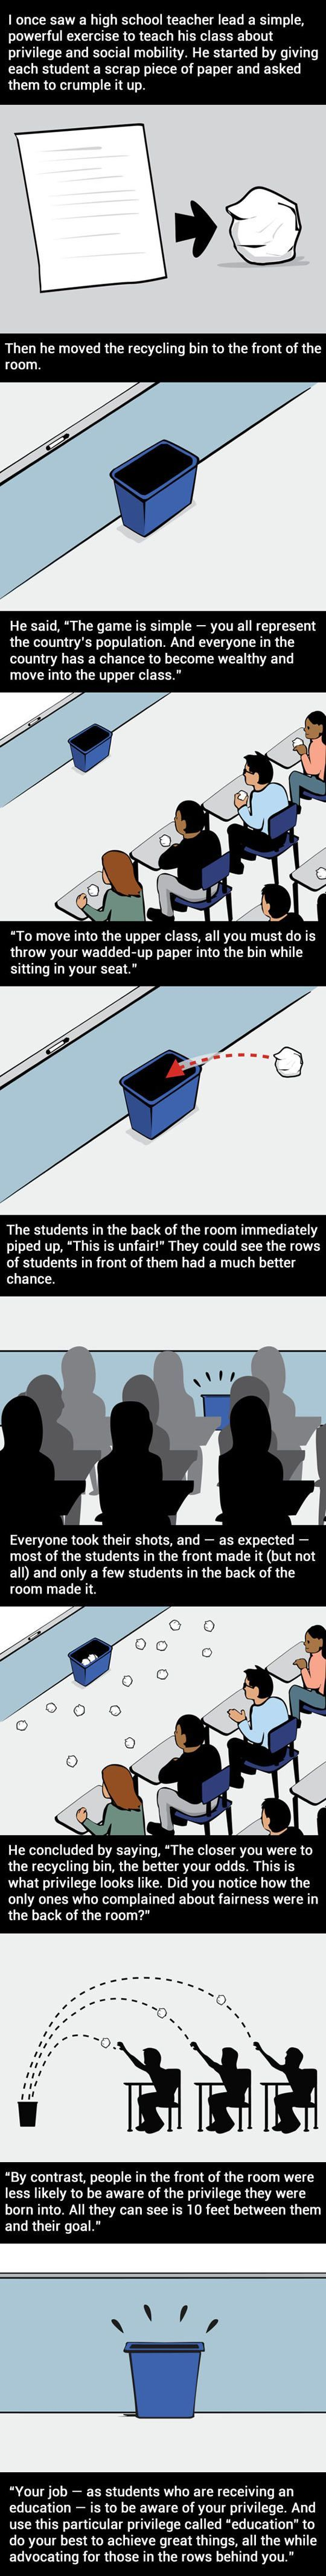 Watch a clever teacher annoy the back row of class to teach all students an important lesson.